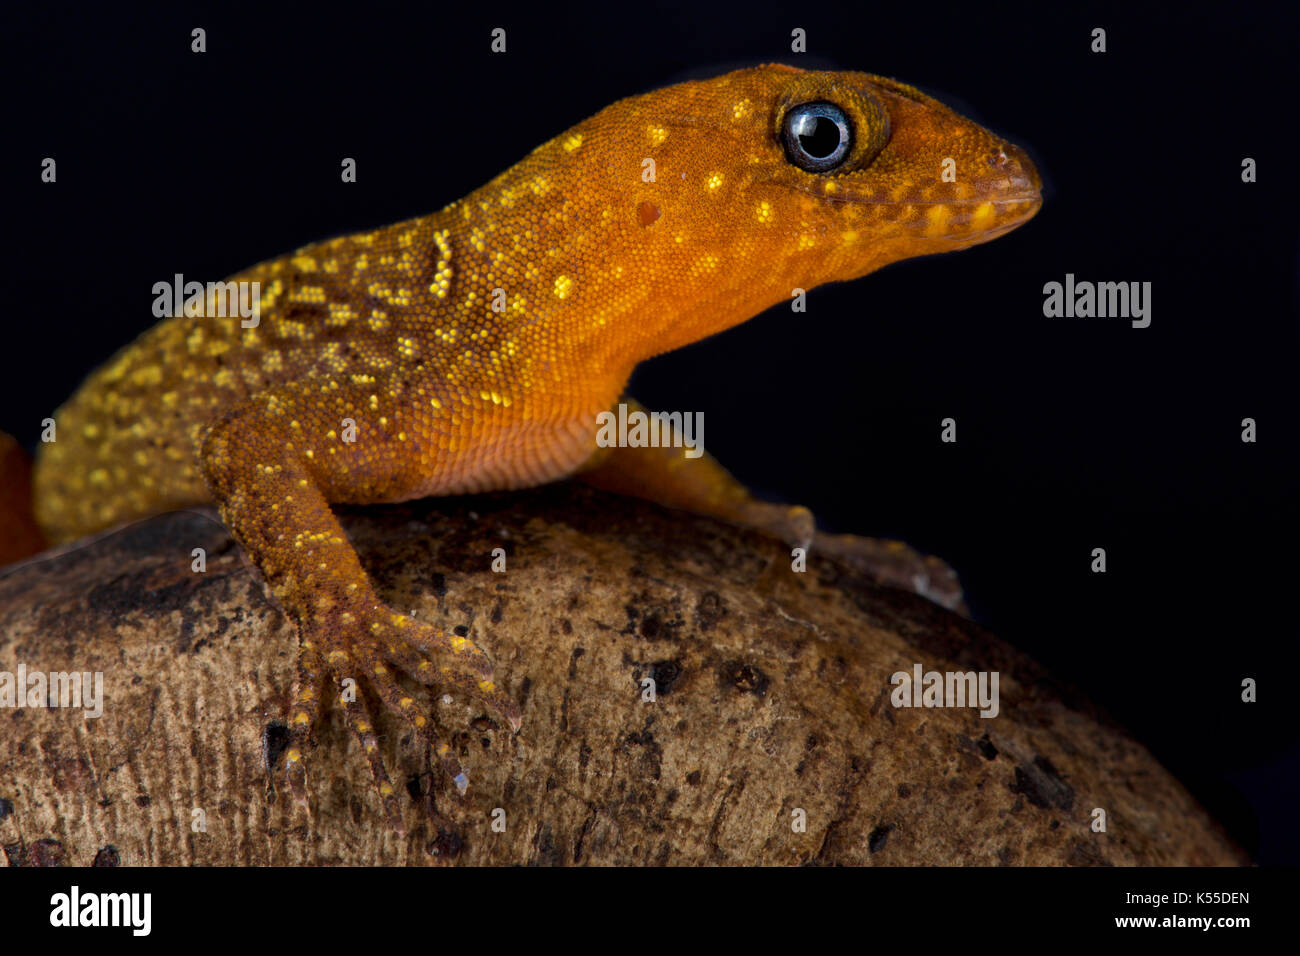 Annulated gecko, Gonatodes annularis - Stock Image